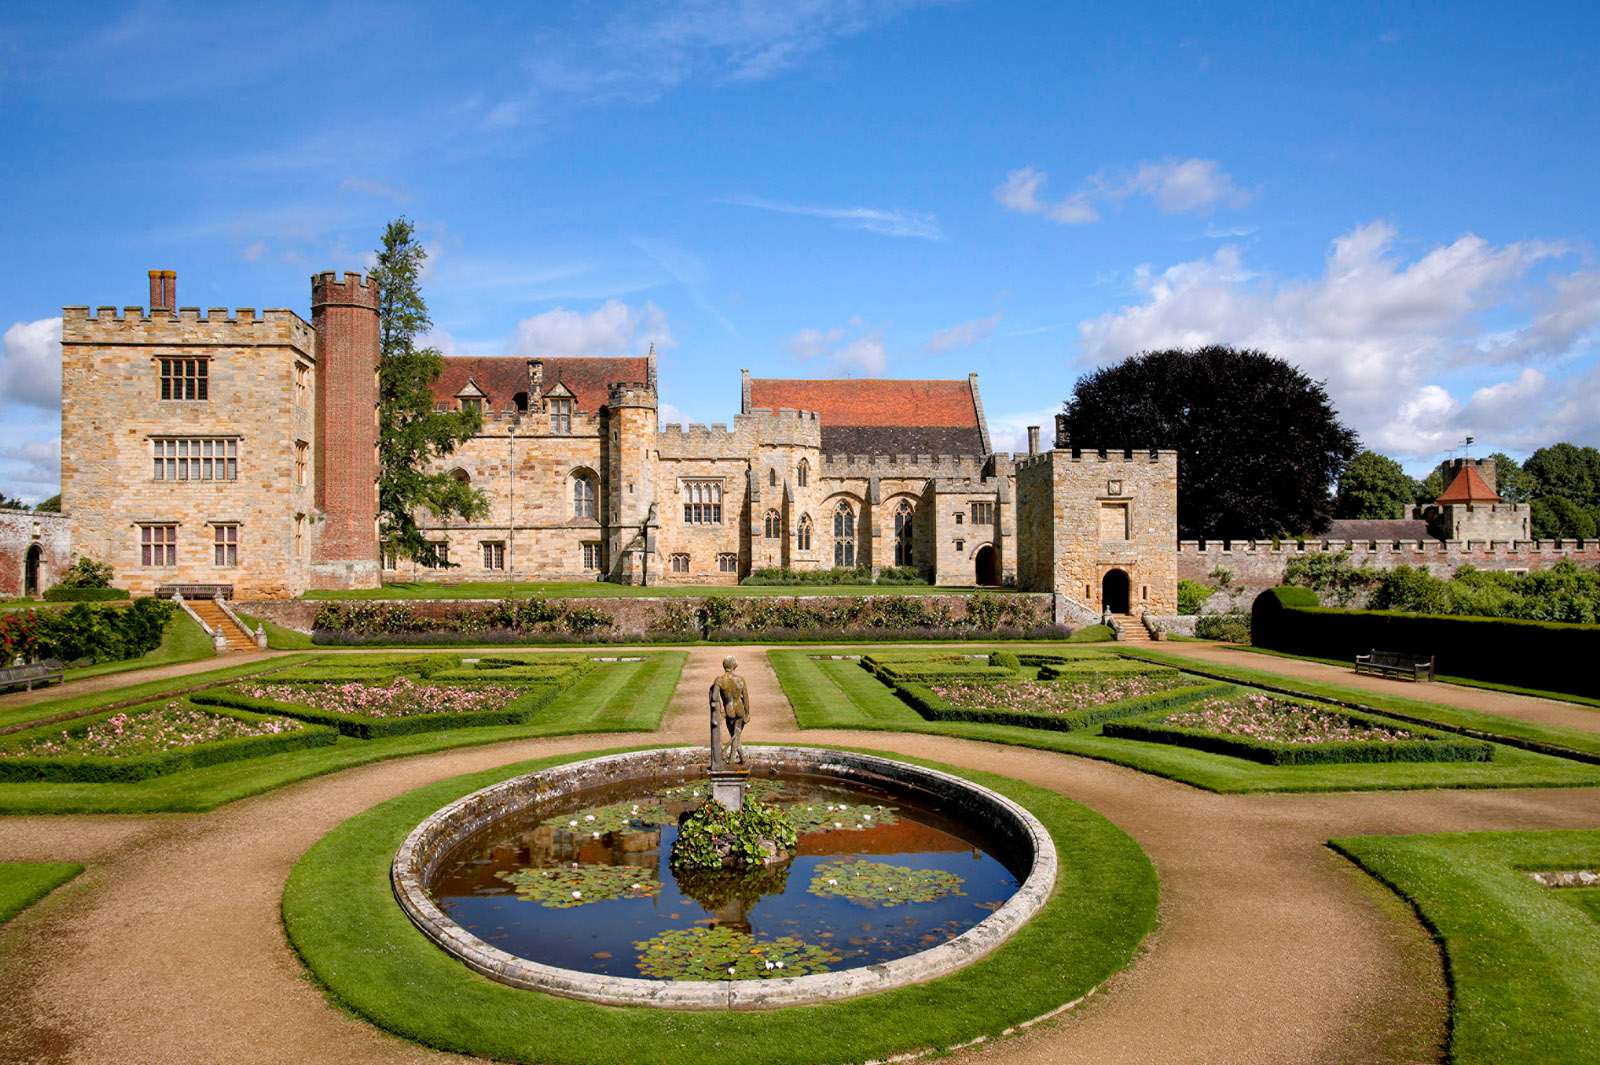 South Lawn at Penshurst Place (c) Peter Smith Jigsaw